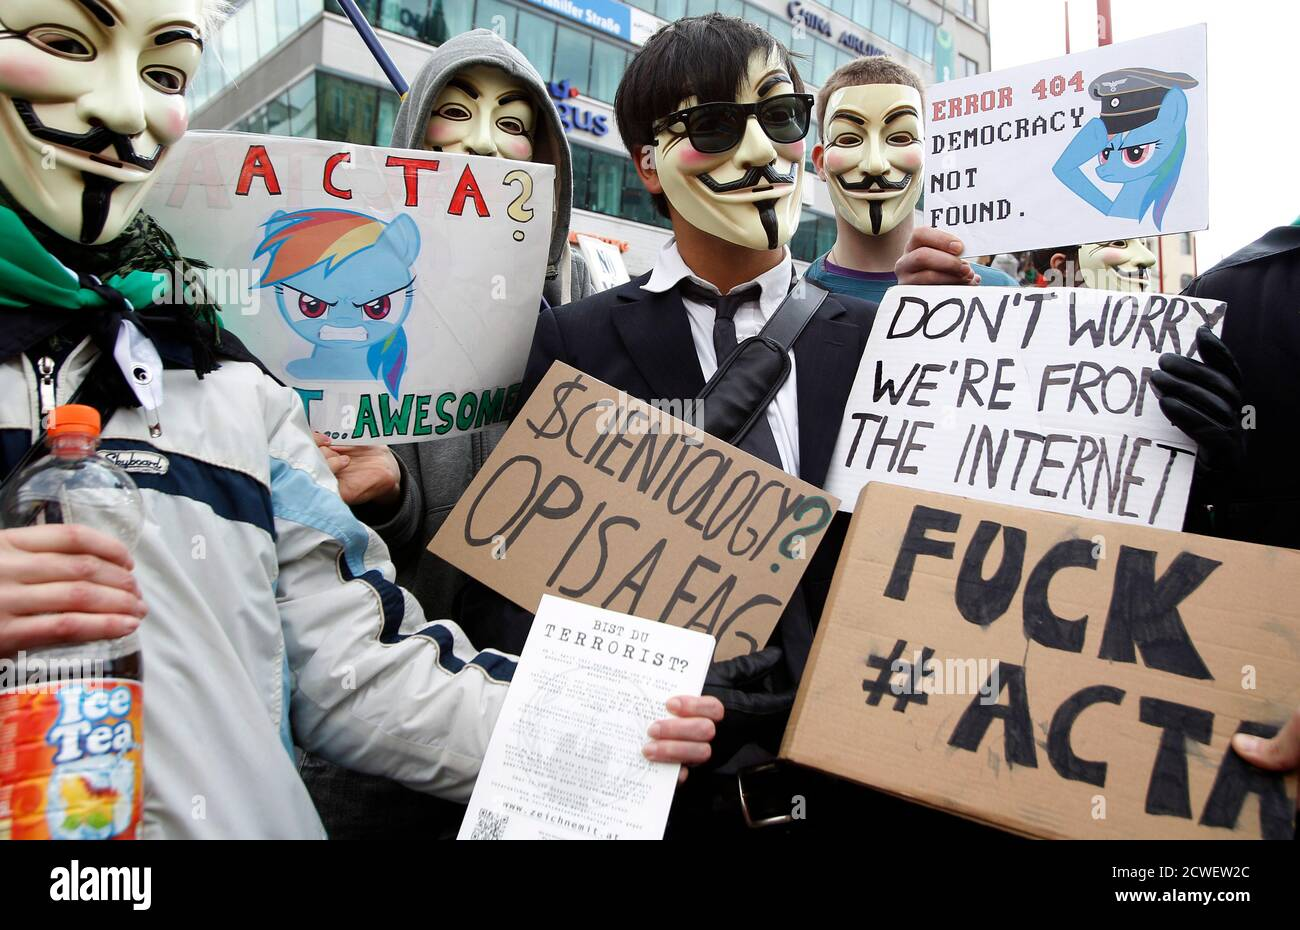 """Protesters wearing Guy Fawkes masks mask, made popular by the graphic novel """"V for Vendetta"""", take part in a demonstration against ACTA (Anti-Counterfeiting Trade Agreement) in Vienna, February 25, 2012.  Protesters fear that ACTA will curtail freedom of expression, curb their freedom to download movies and music for free and encourage Internet surveillance.   REUTERS/Lisi Niesner (AUSTRIA - Tags: POLITICS CIVIL UNREST) Foto de stock"""